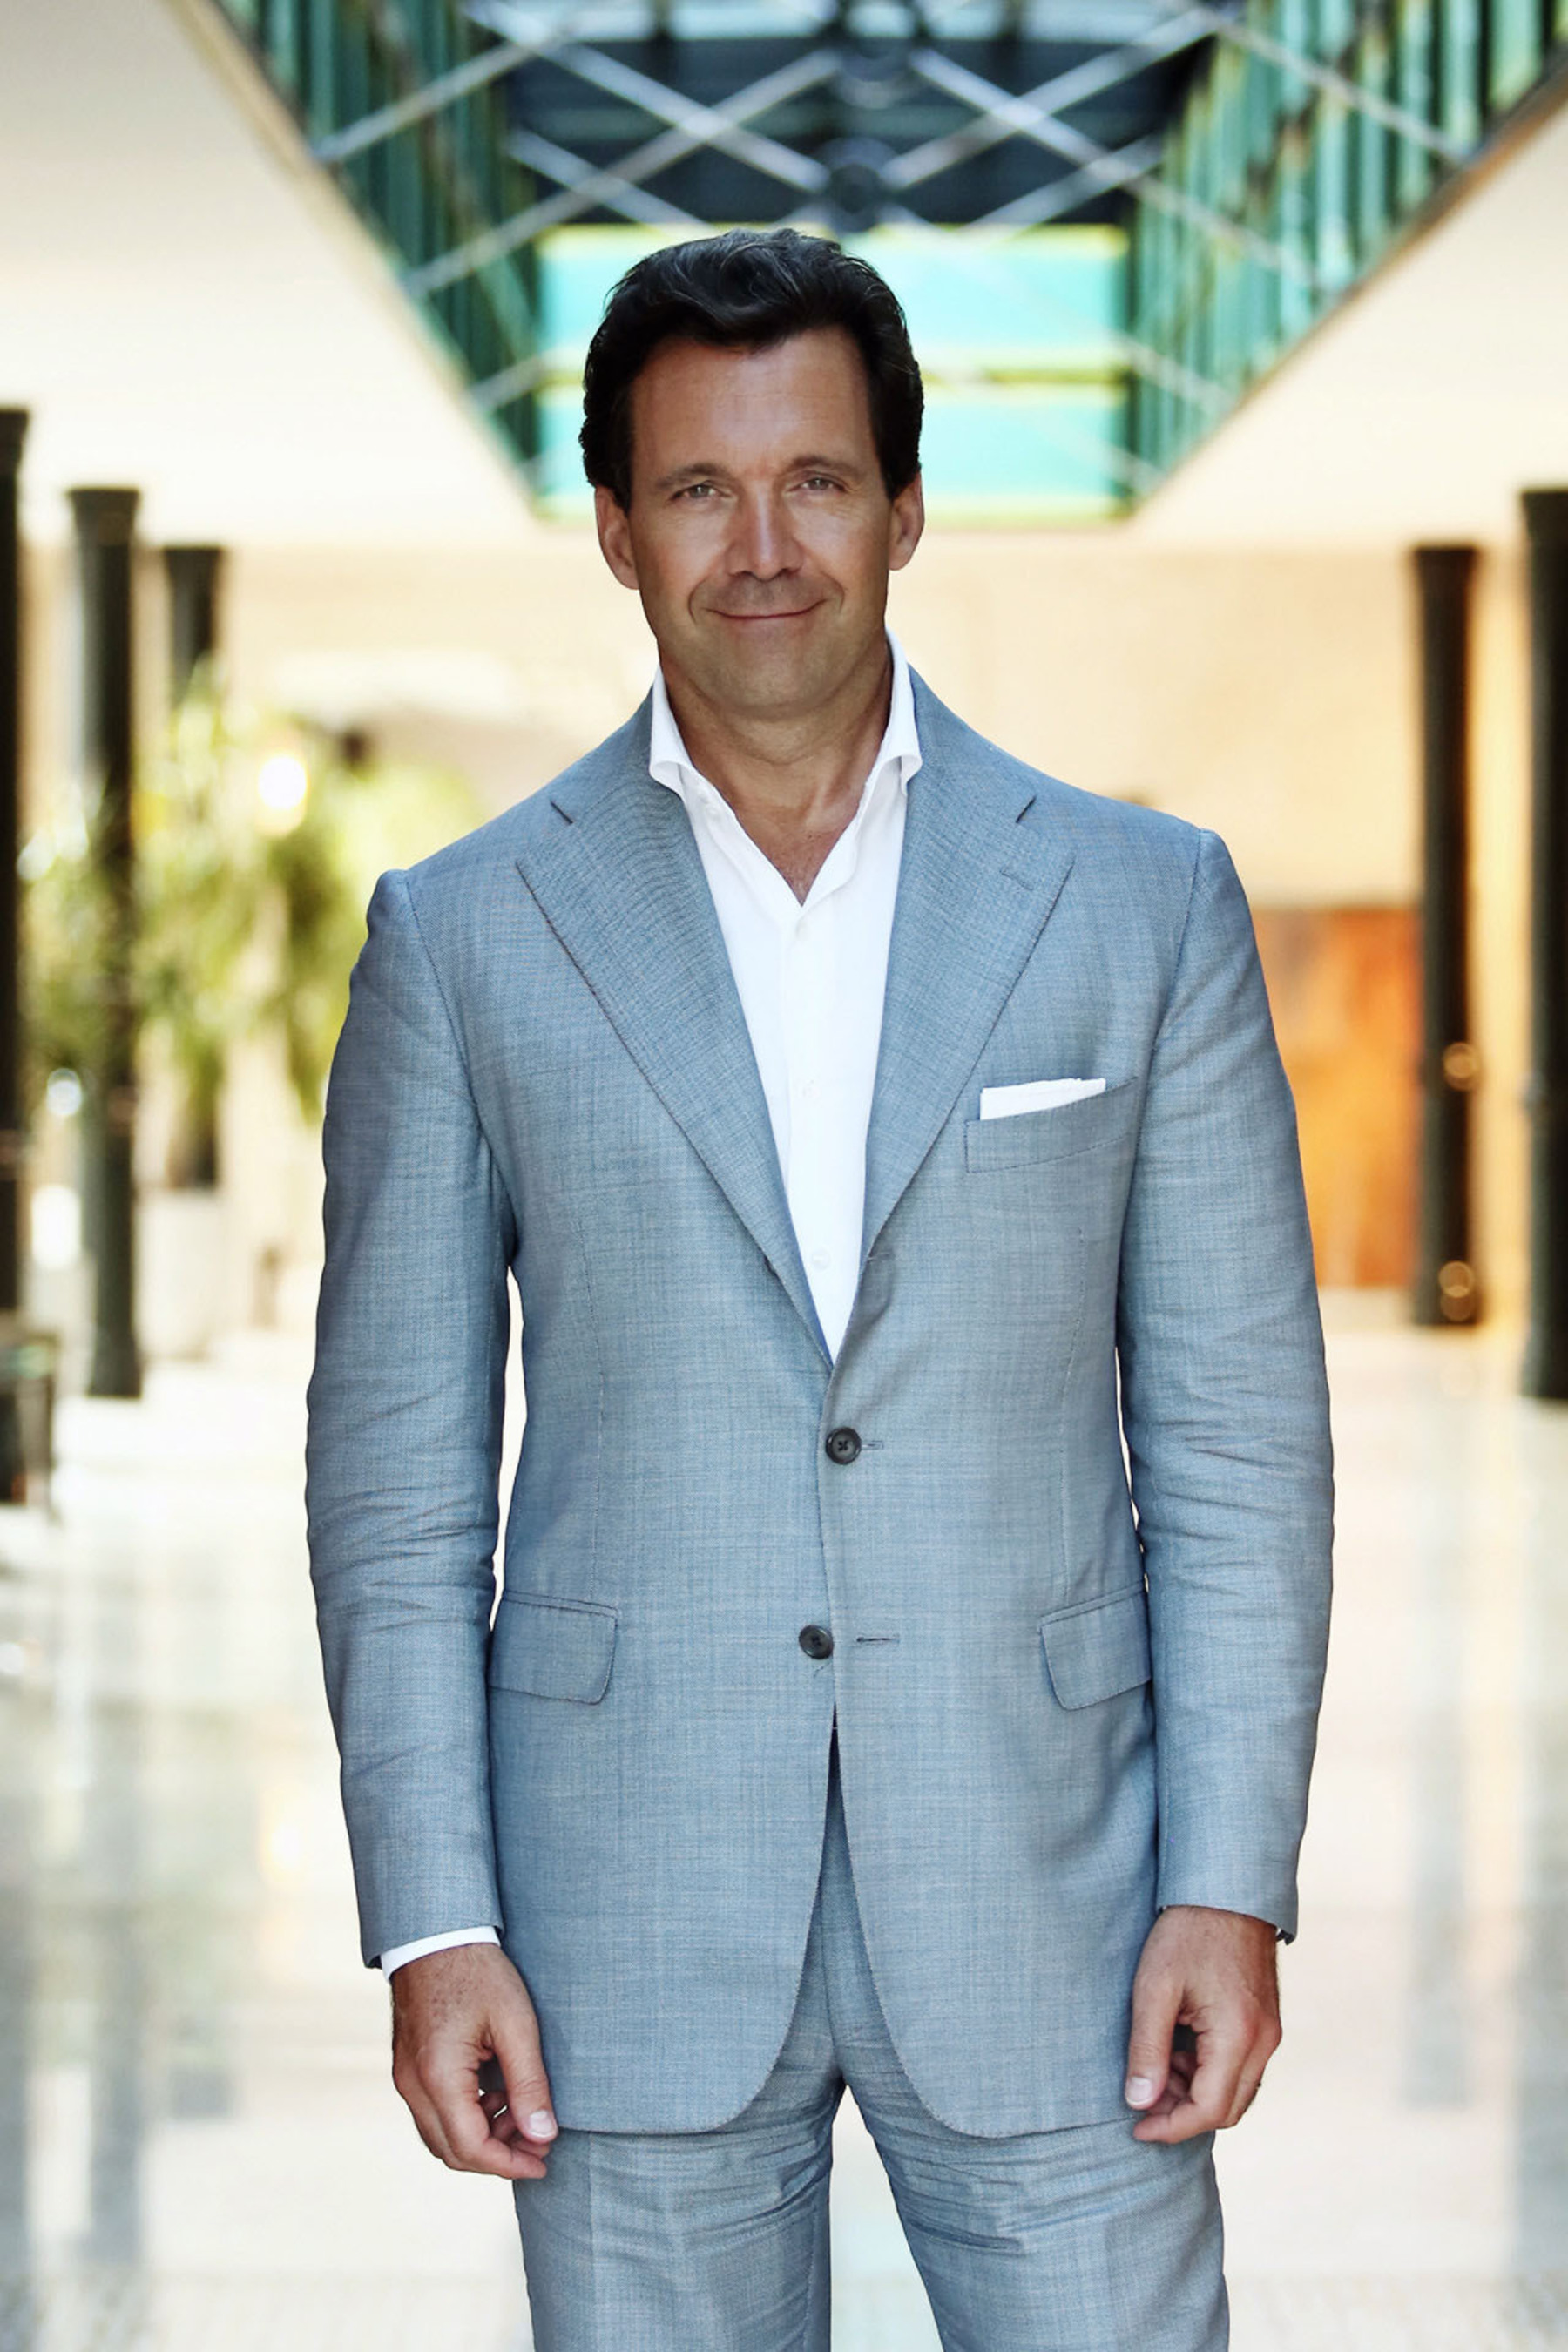 Four Seasons Hotels and Resorts promotes Christopher Norton to Executive Vice President, Global Product and Operations. (PRNewsFoto/Four Seasons Hotels and Resorts) (PRNewsFoto/FOUR SEASONS HOTELS AND RESORTS)